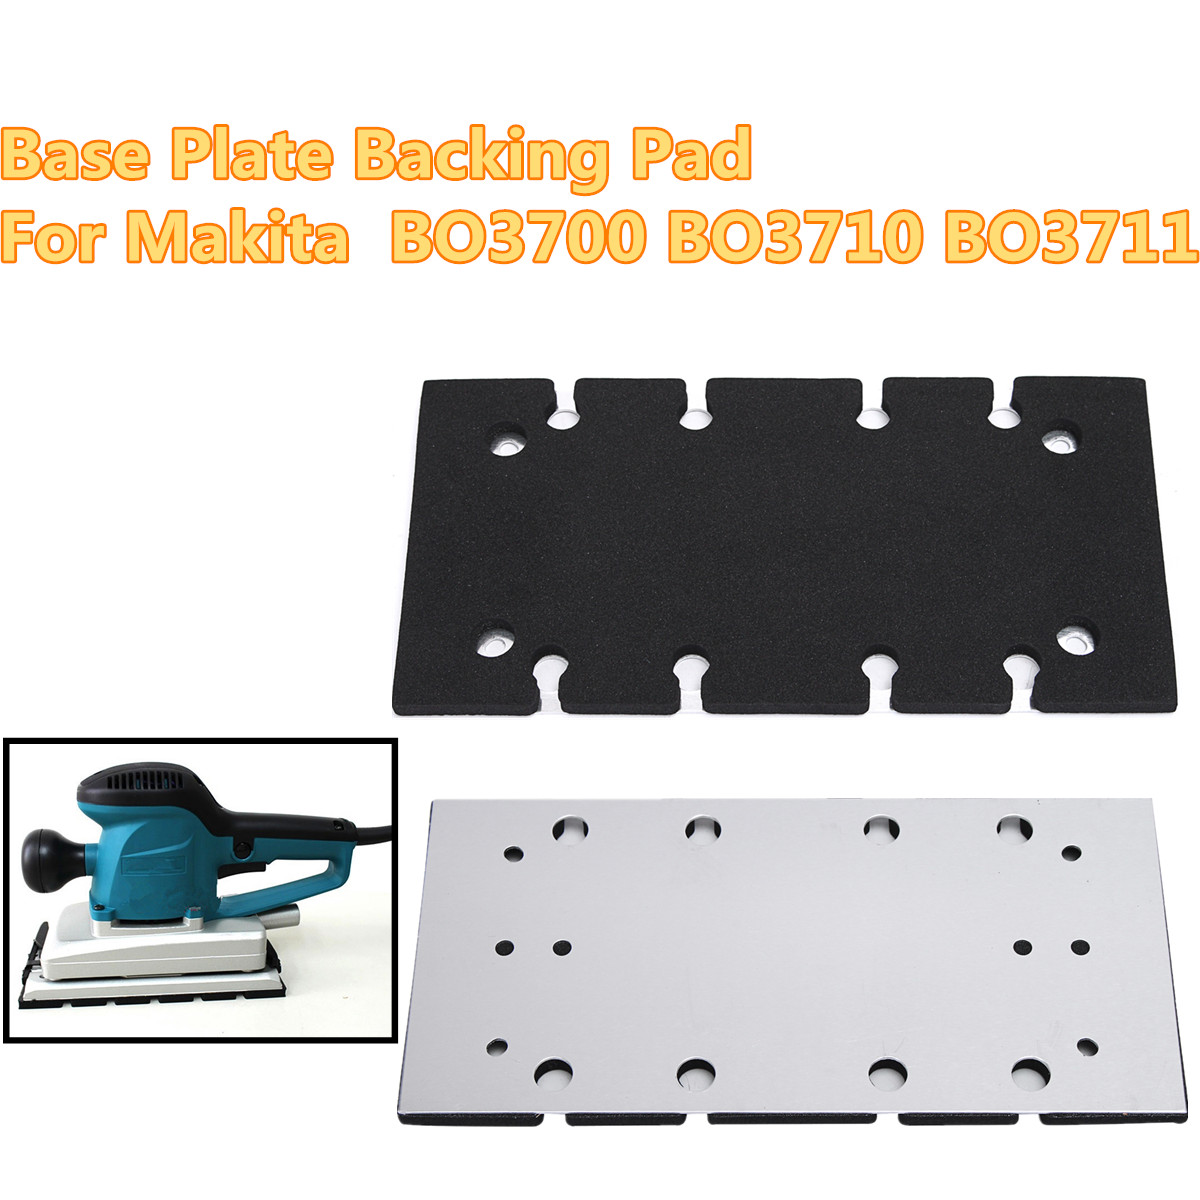 Base Plate Backing Pad For Makita BO3700 BO3710 BO3711 1/3 Sheet Sander Spare